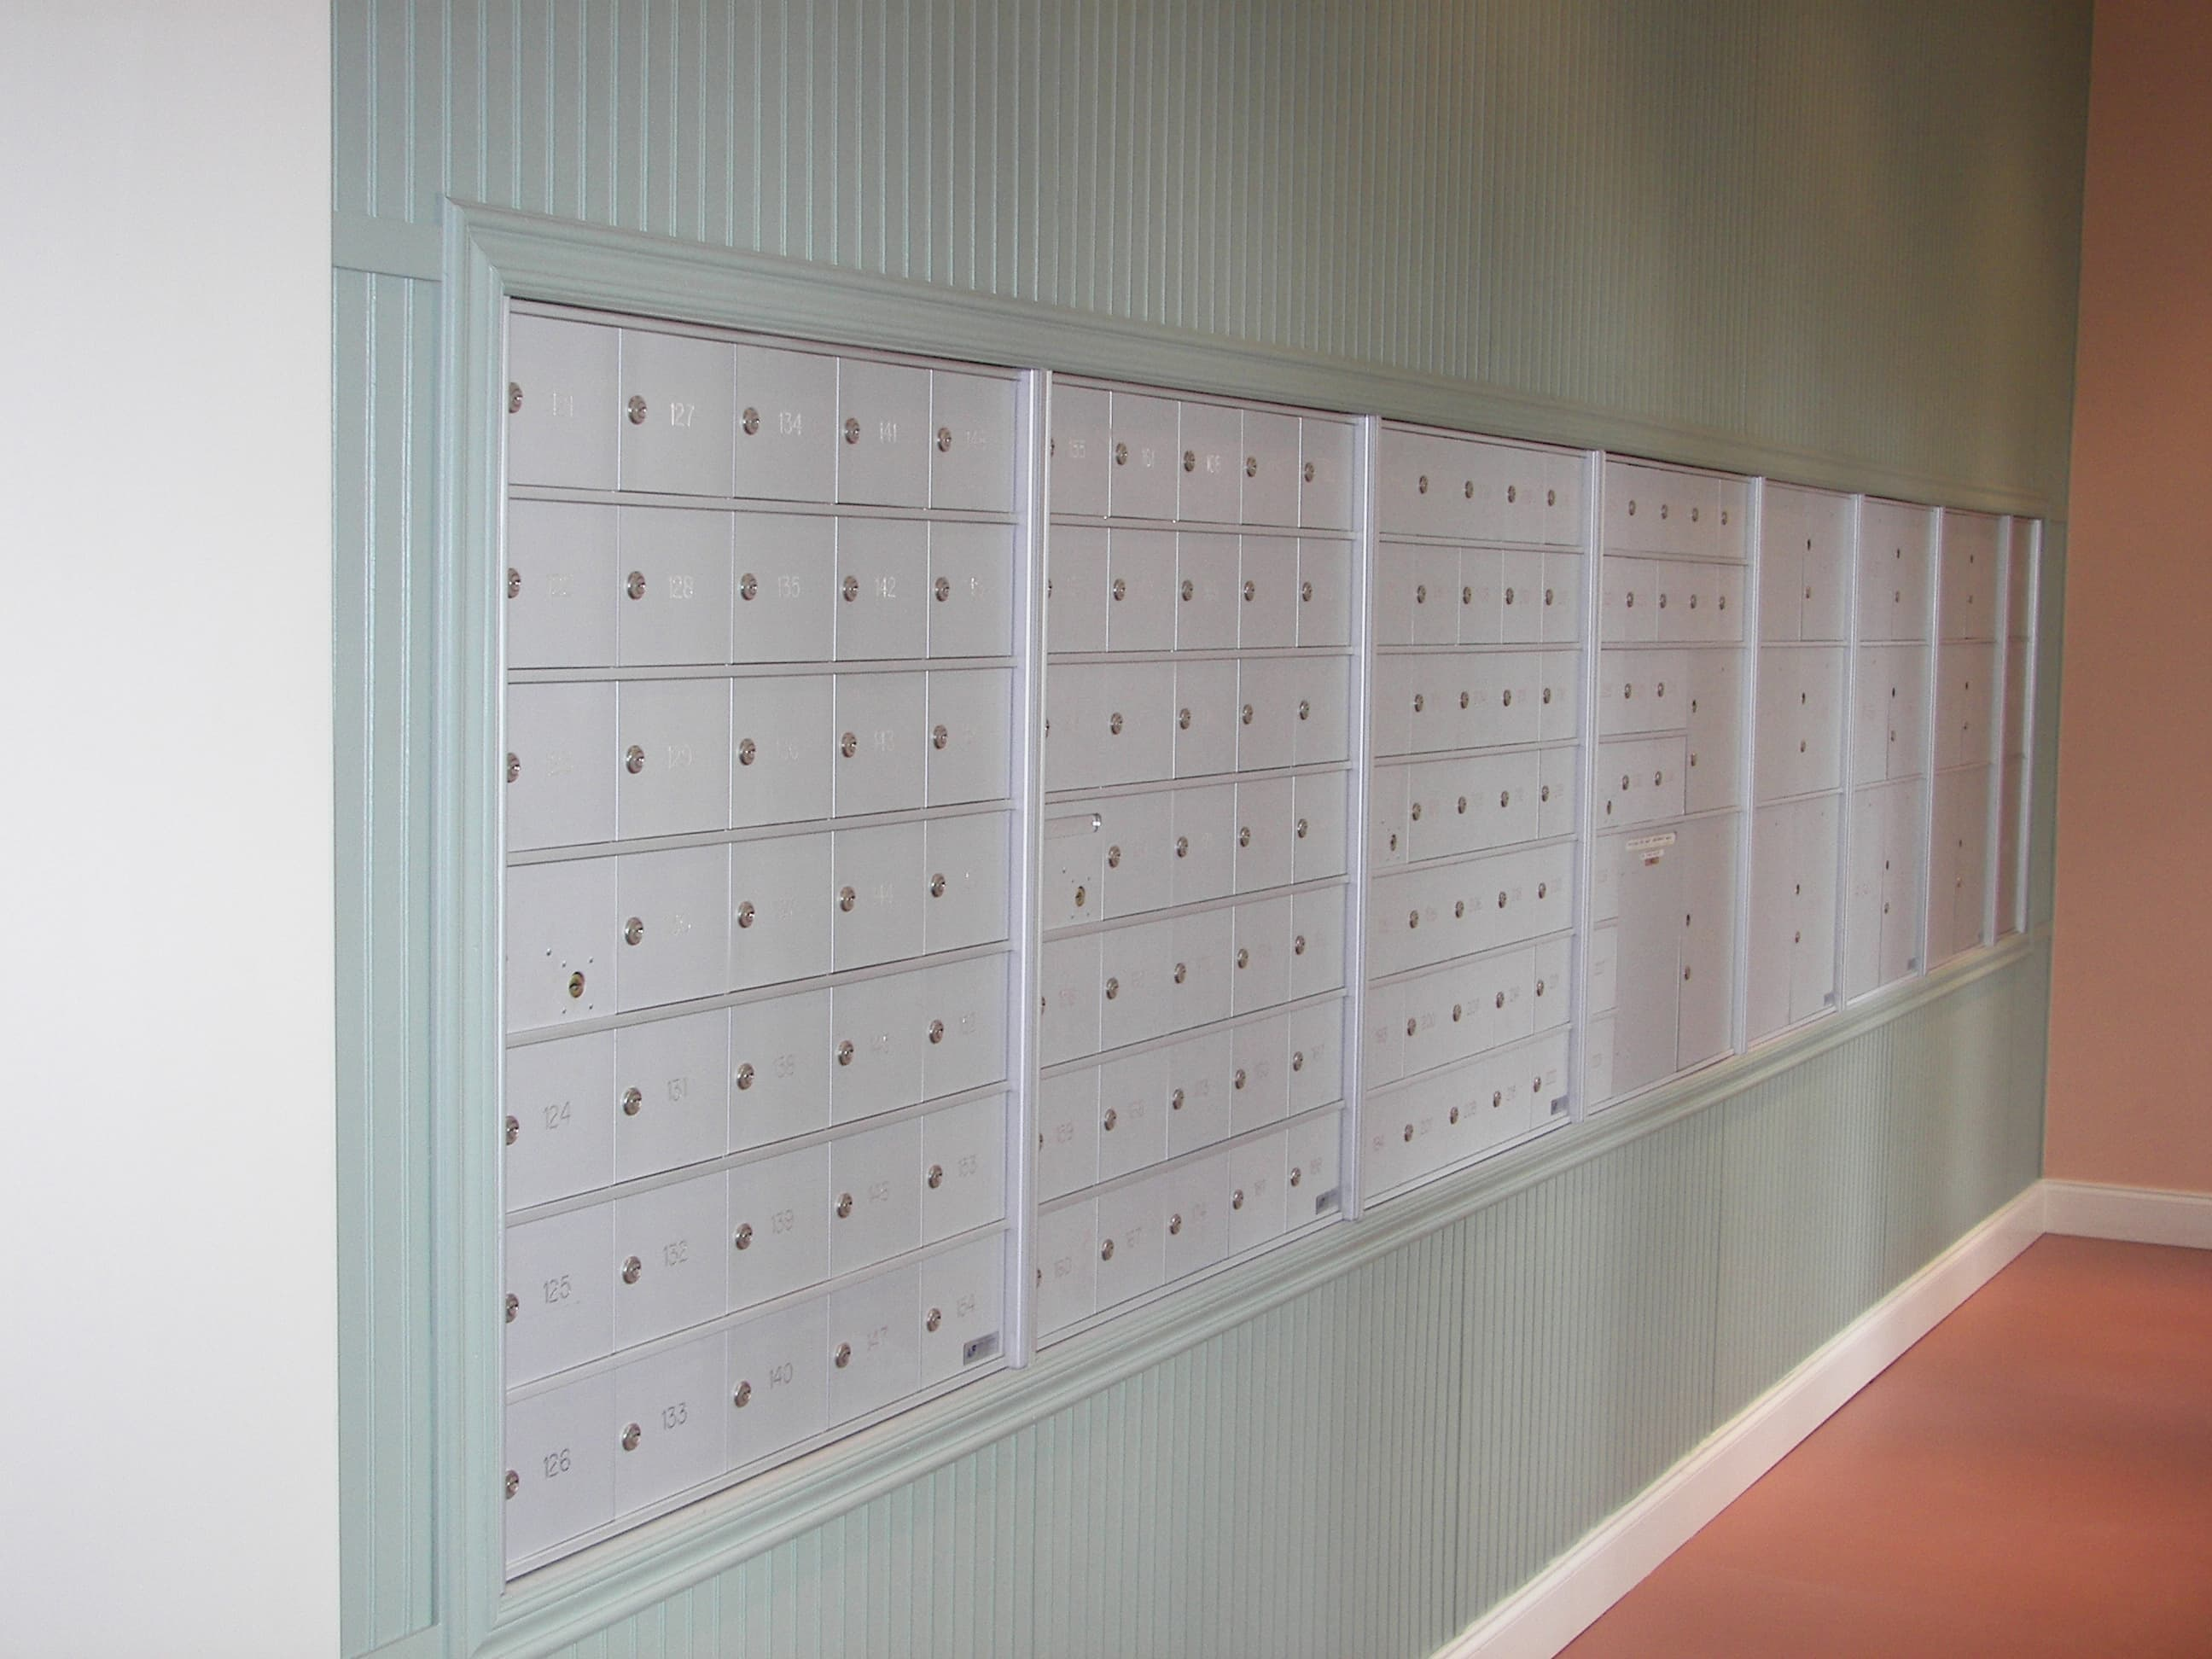 repairing your old horizontal or vertical 4B+ mailboxes